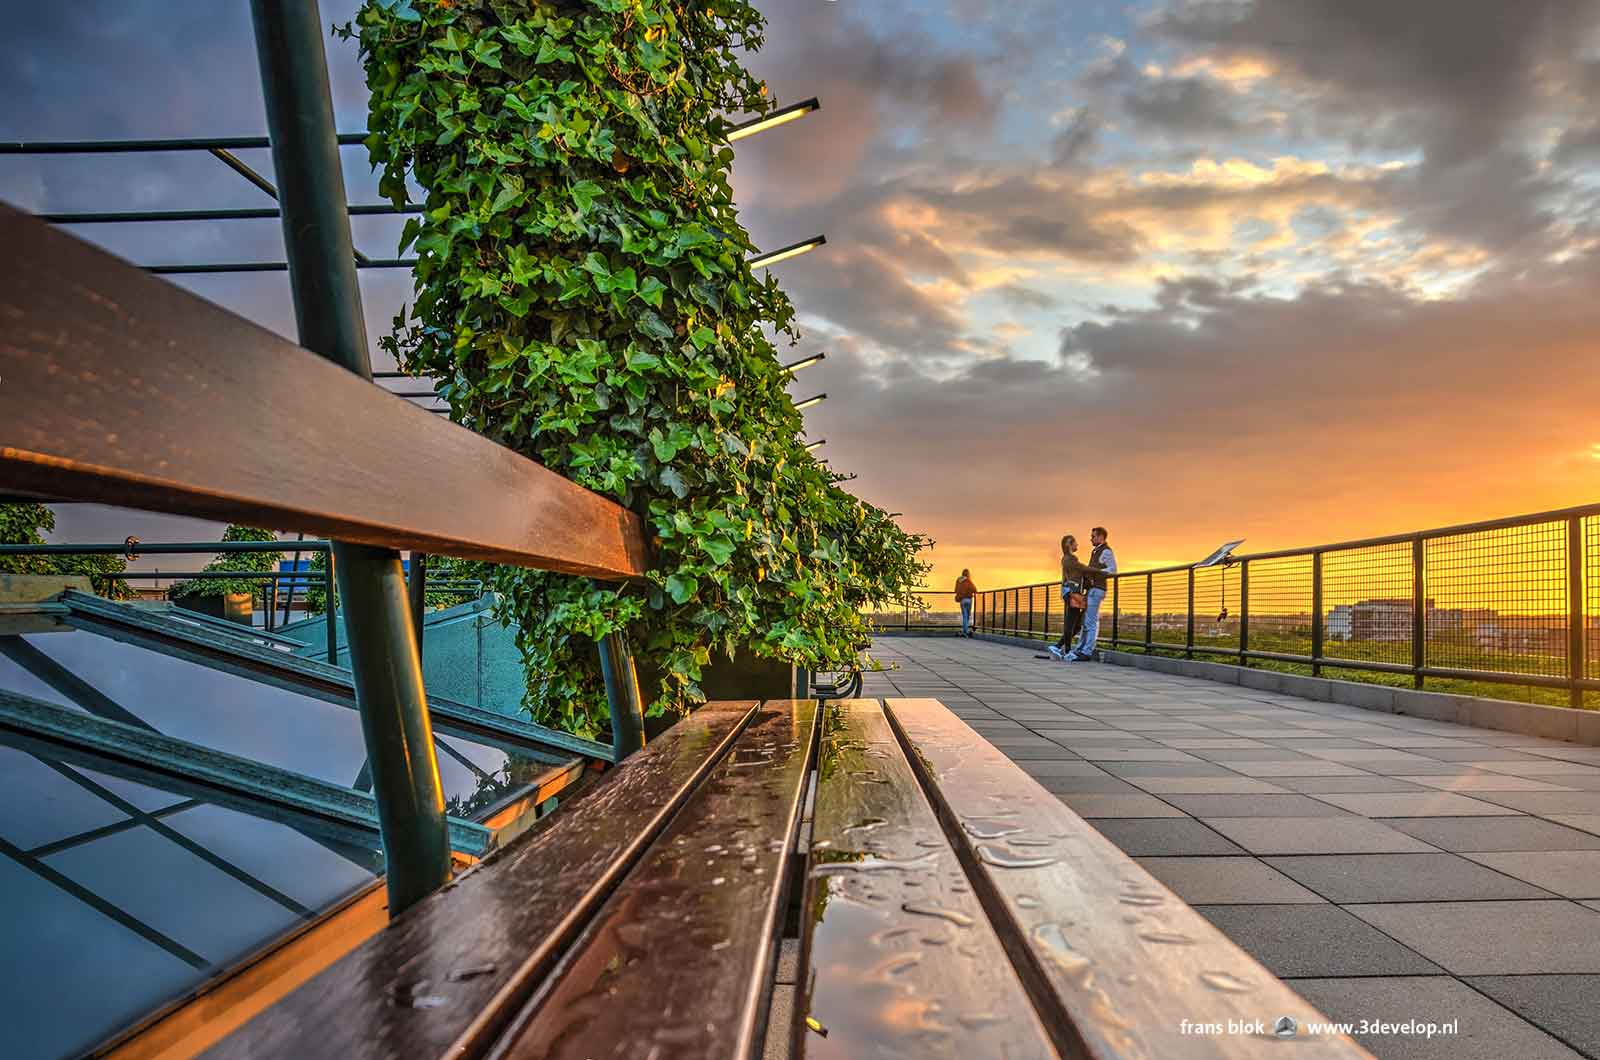 Bench on the roof of the Groothandelsgebouw during sunset, with a couple in a romantic mood in the background